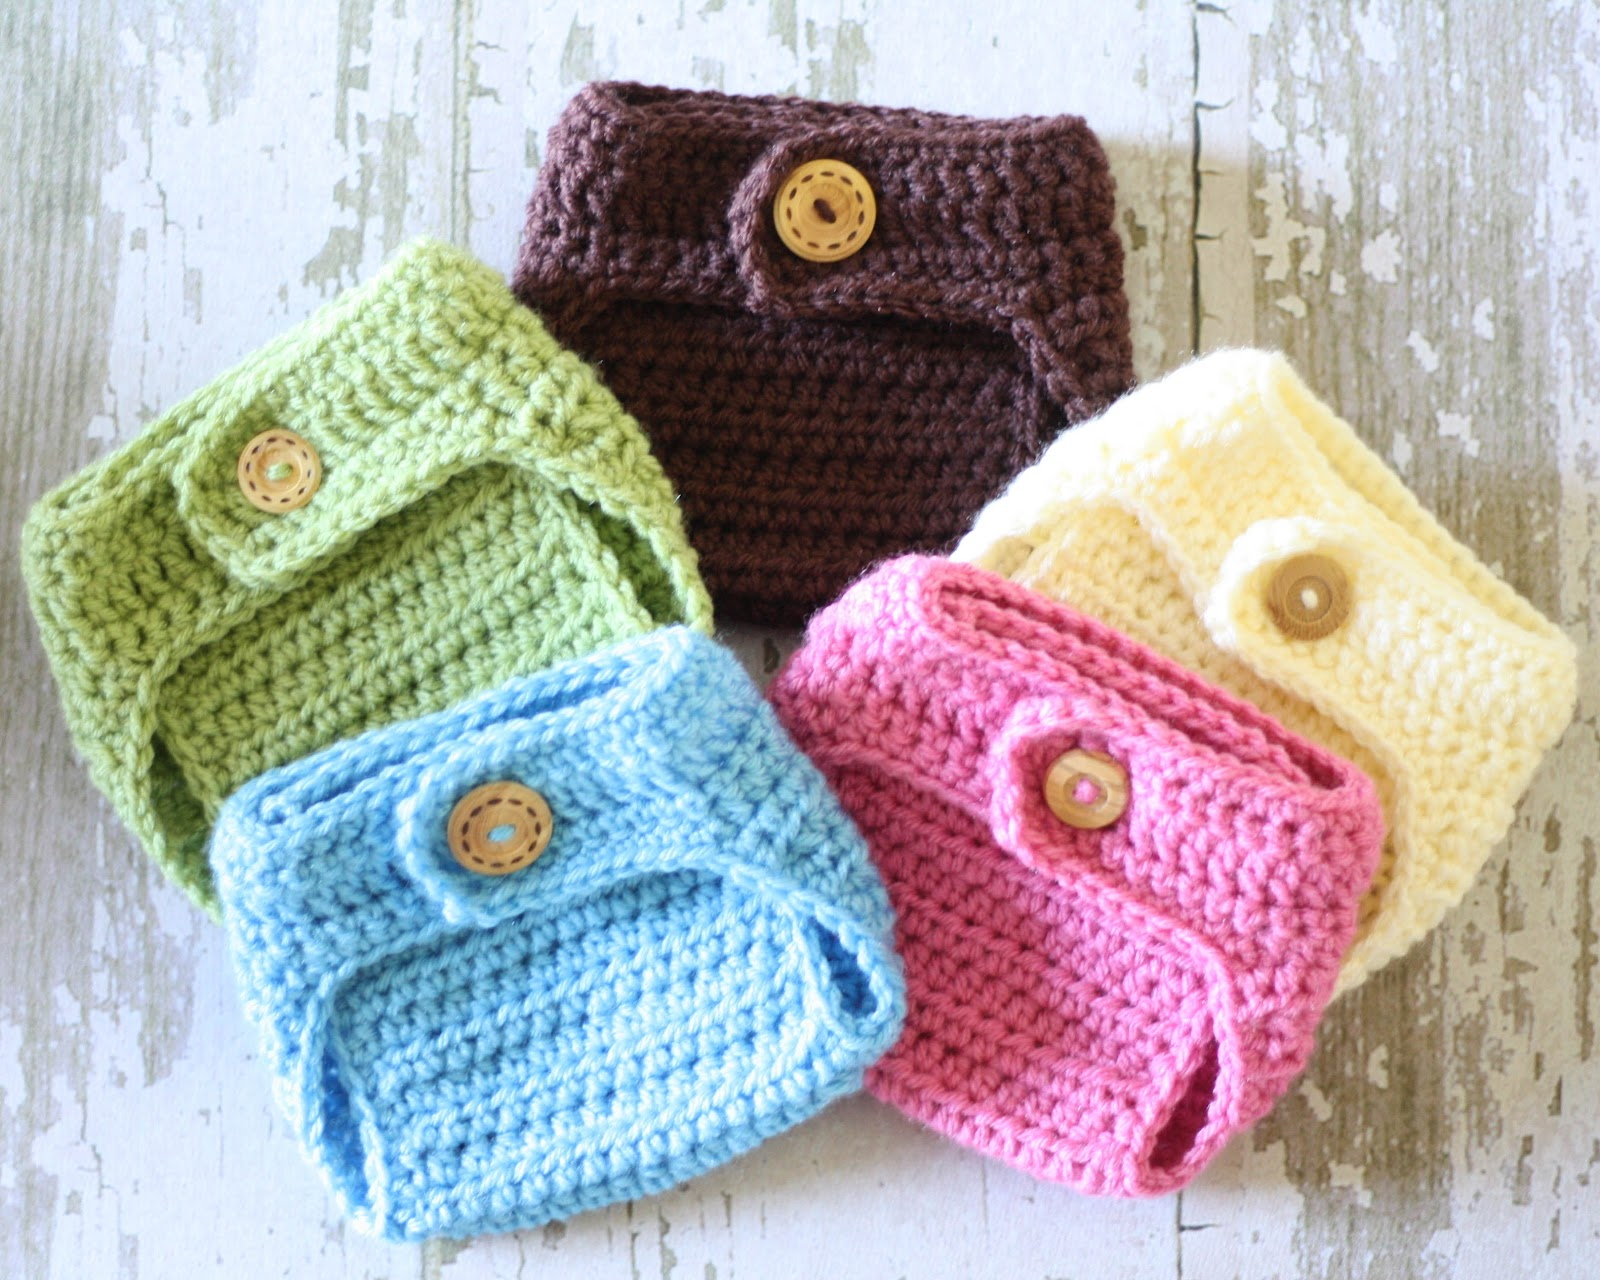 Crochet Patterns Diaper Covers : This Pattern will be emailed to you as a PDF file.